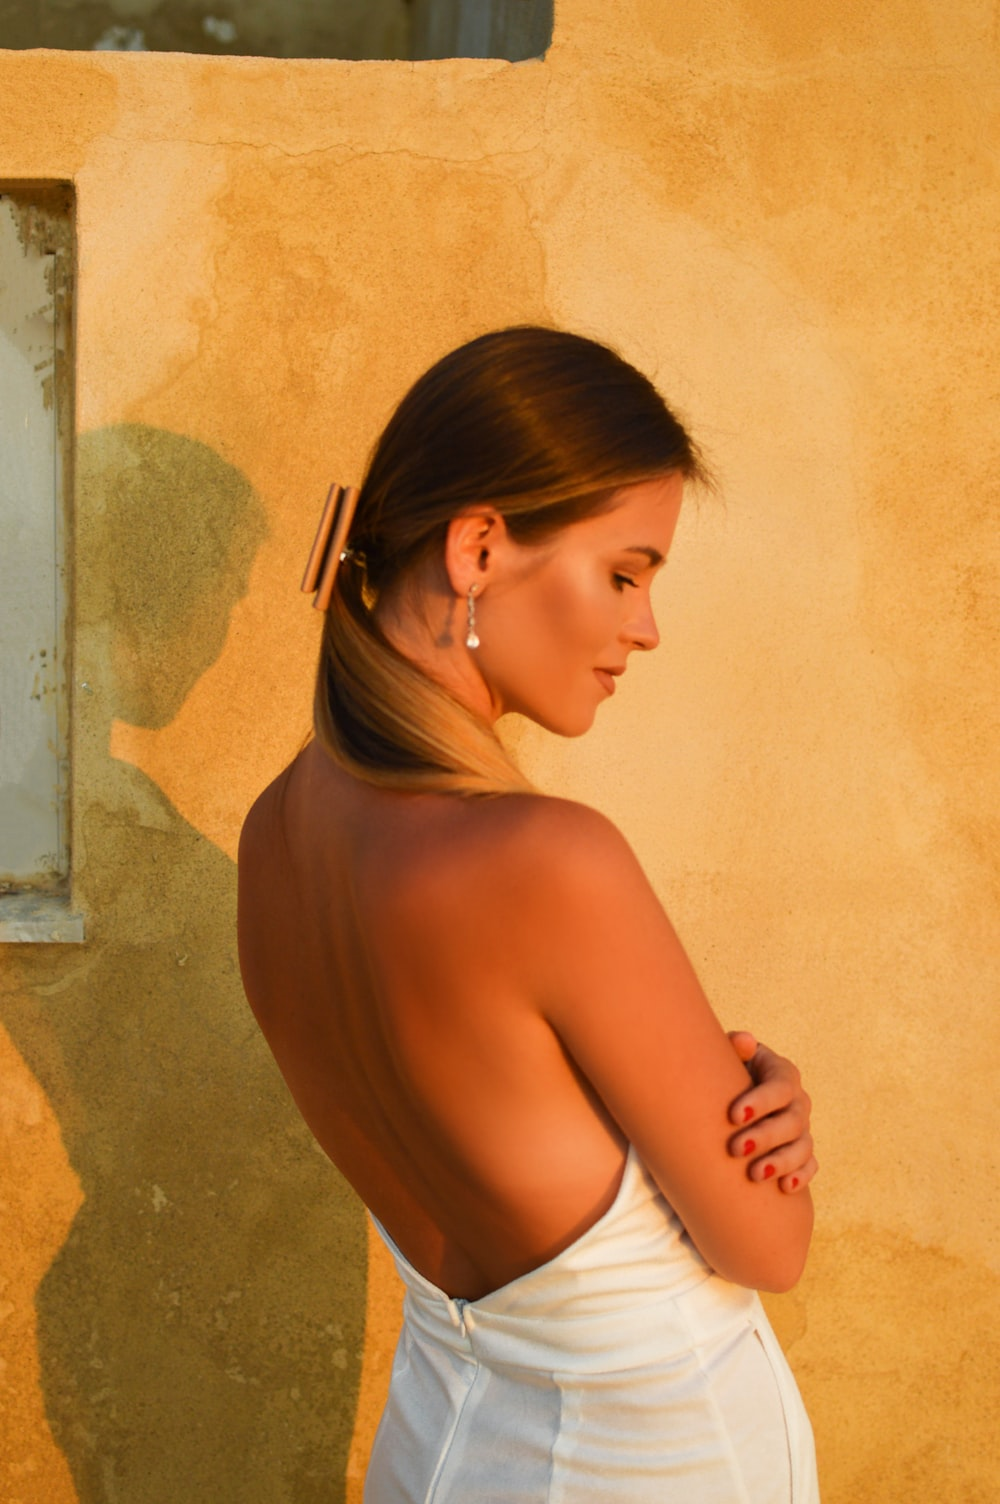 woman in white panty leaning on wall